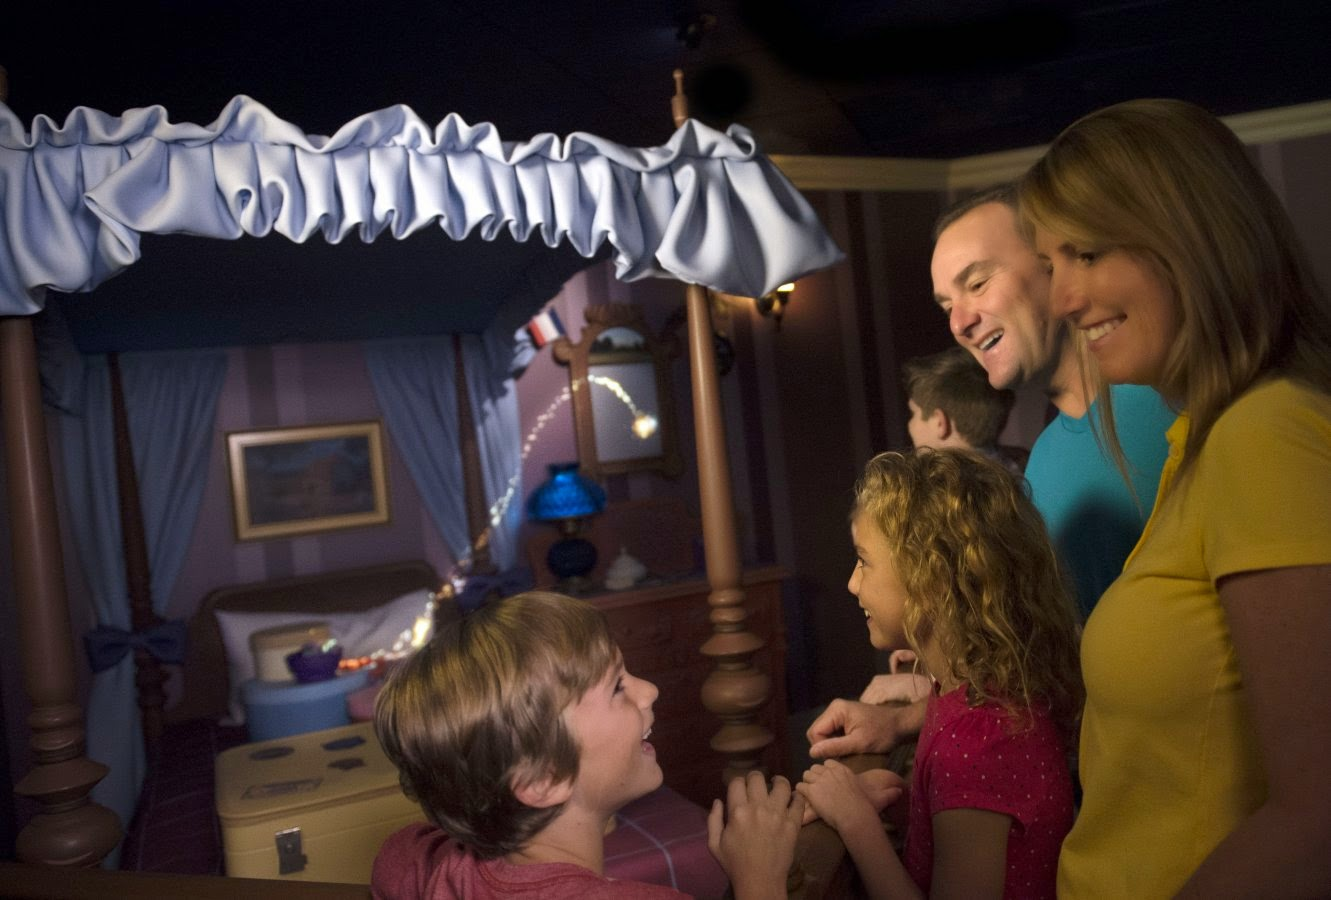 Morgan's Milieu | You Can Fly Too at Peter Pan's Flight in Walt Disney World: Get sprinkled with pixie dust!